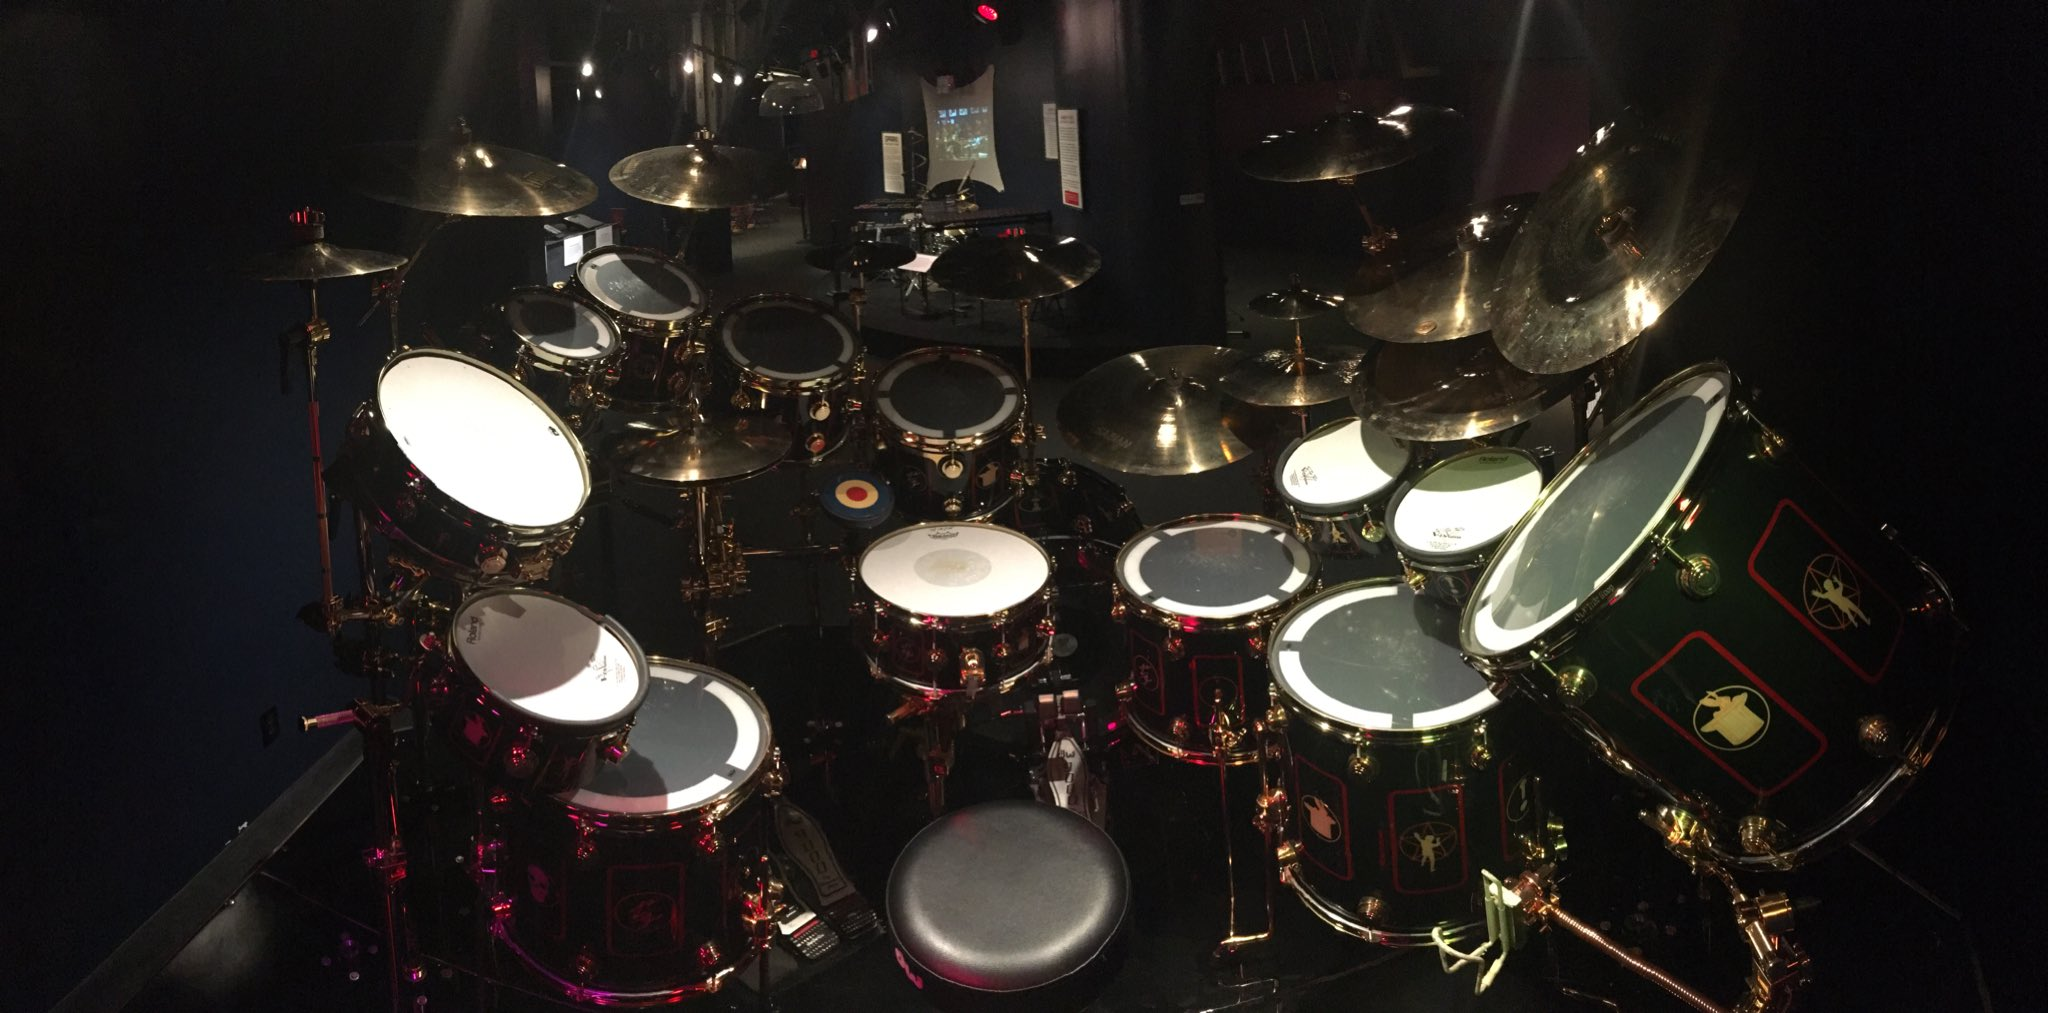 Neil Peart S R40 Drum Kit On Display At The Rhythm Discovery Center